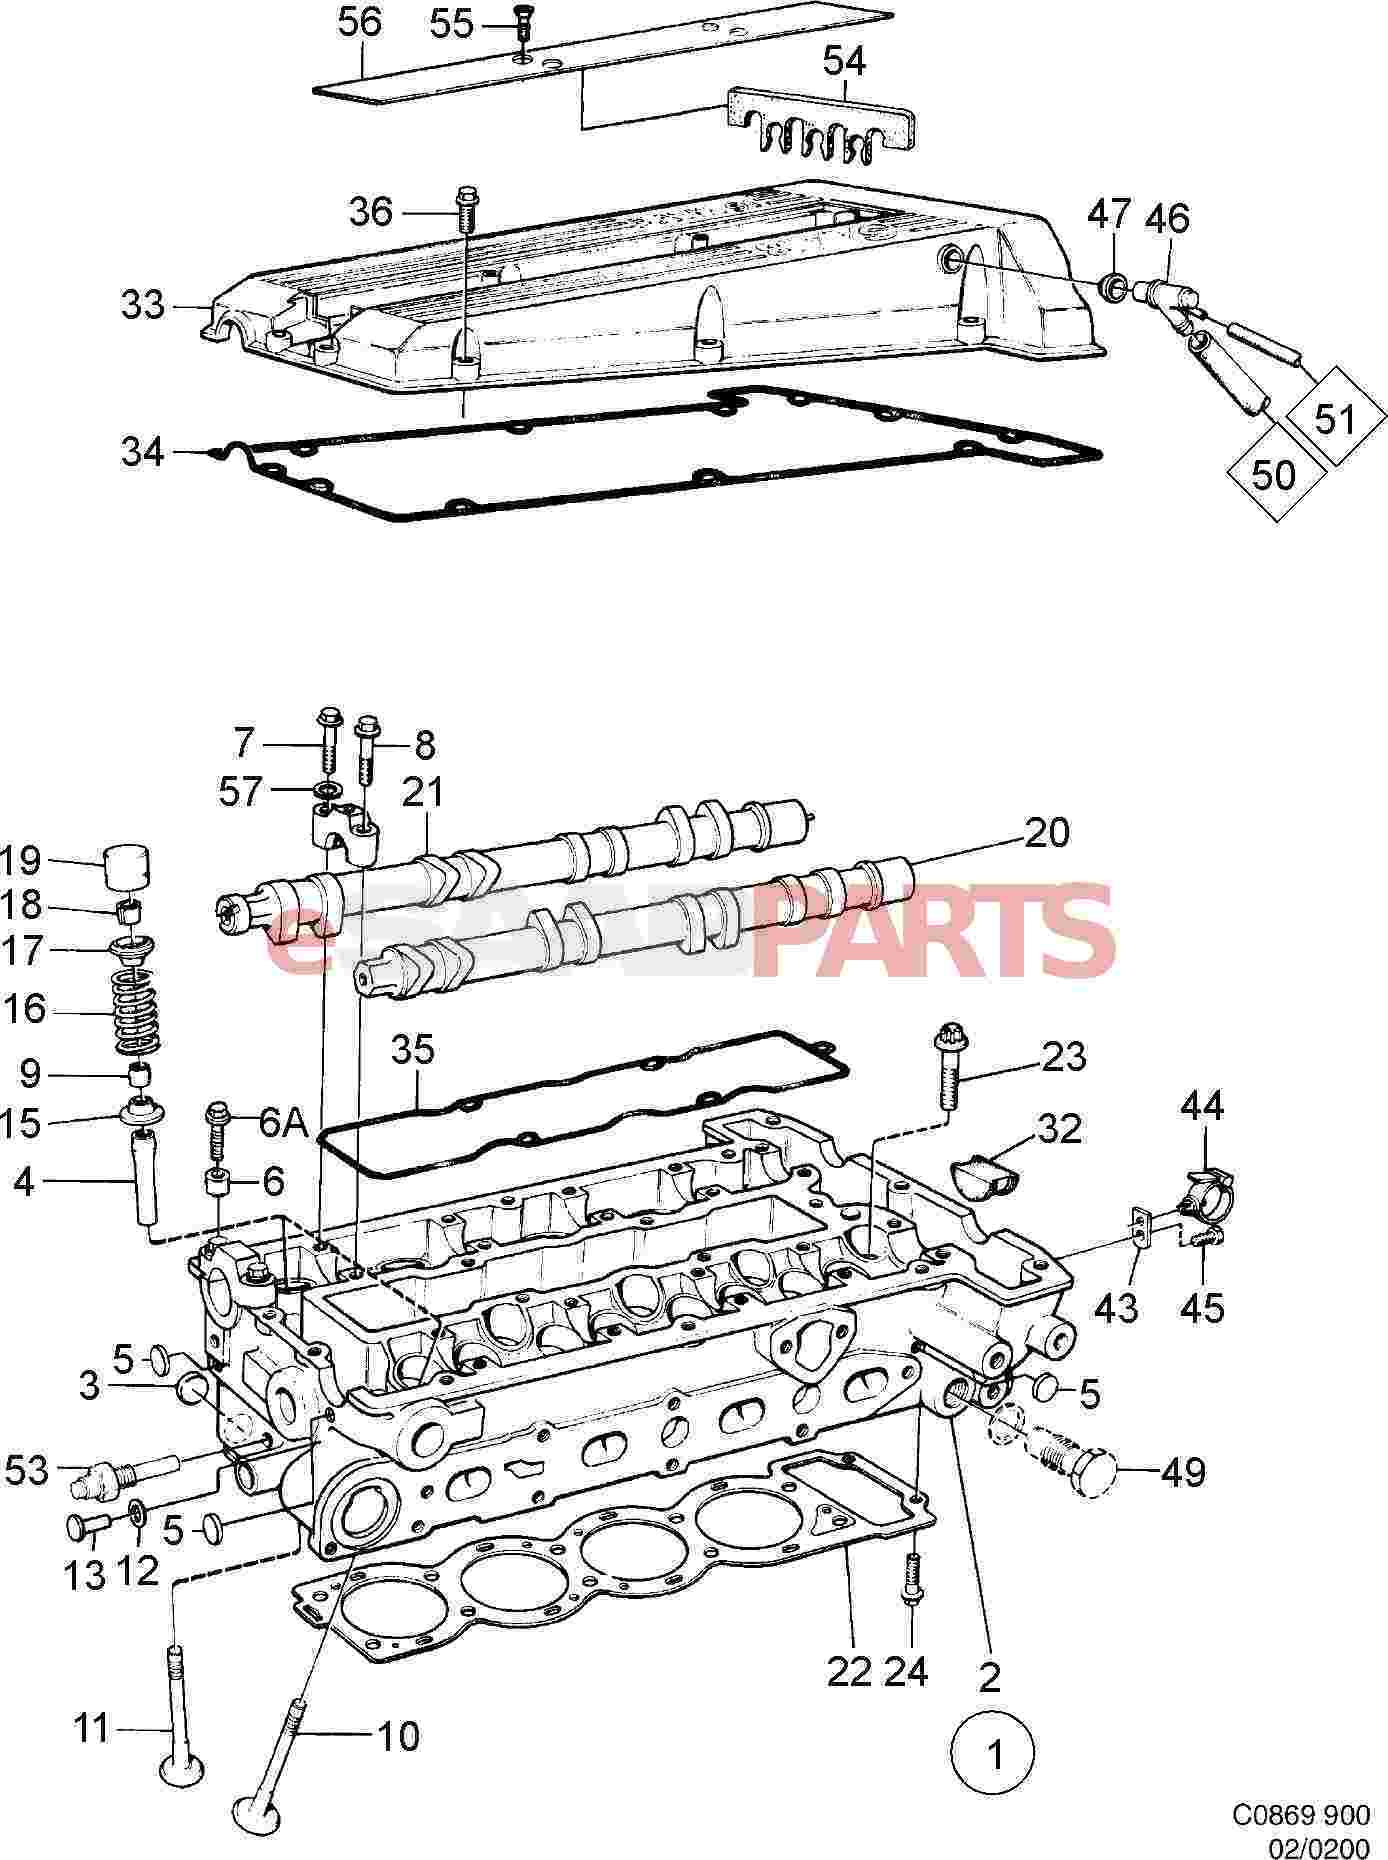 hight resolution of 8822041 saab valve cover gasket kit genuine saab parts from egr valve 150 scooters valve cover diagram